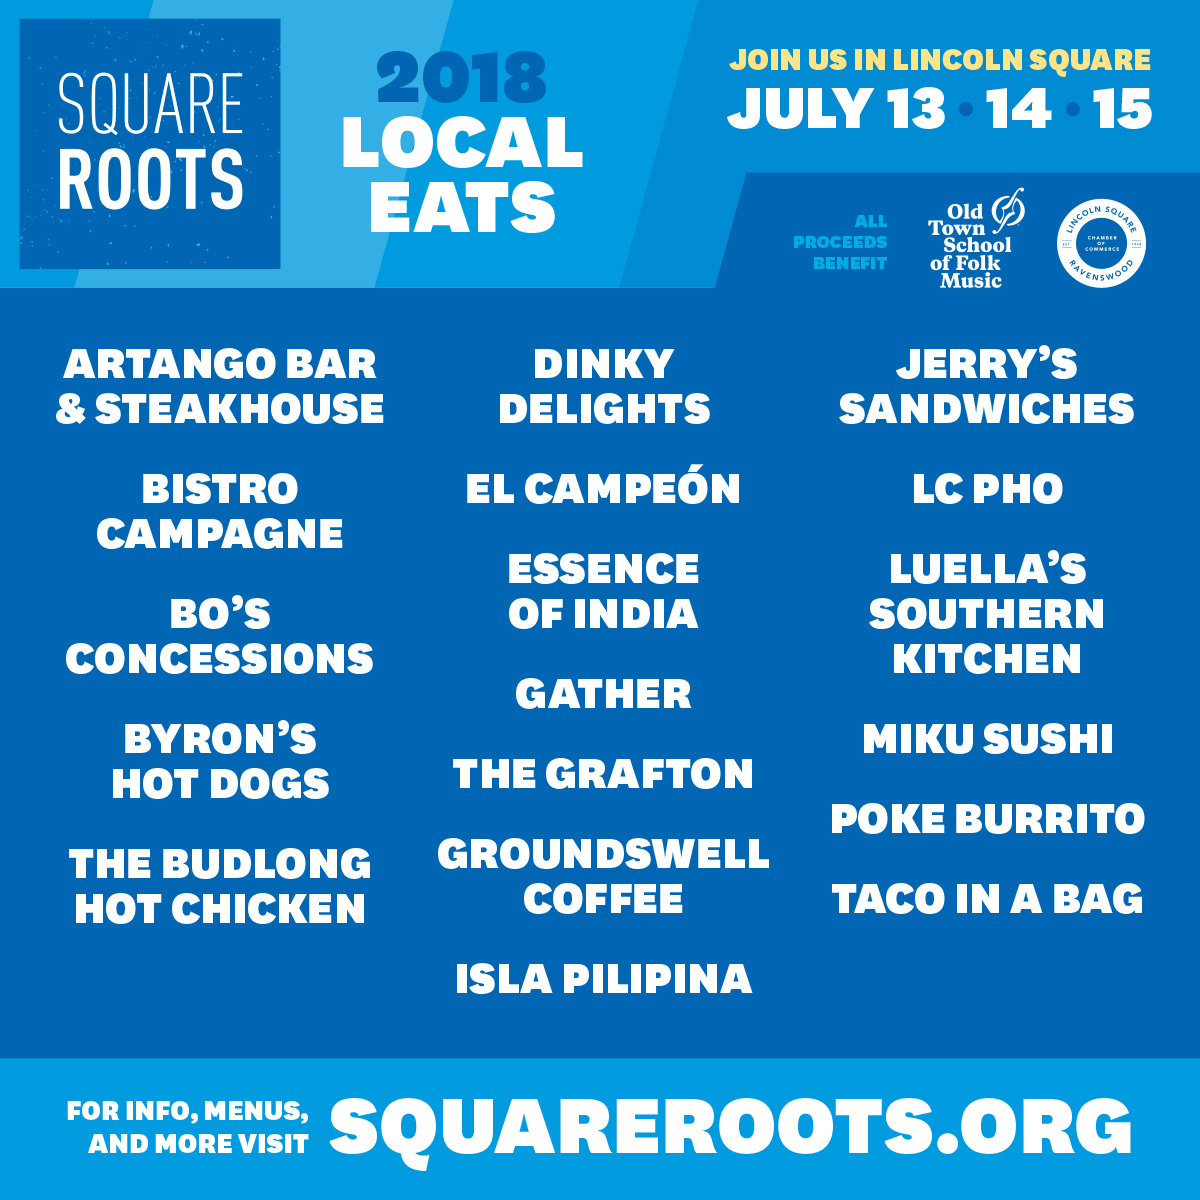 Square Roots 2018 Food Announcement